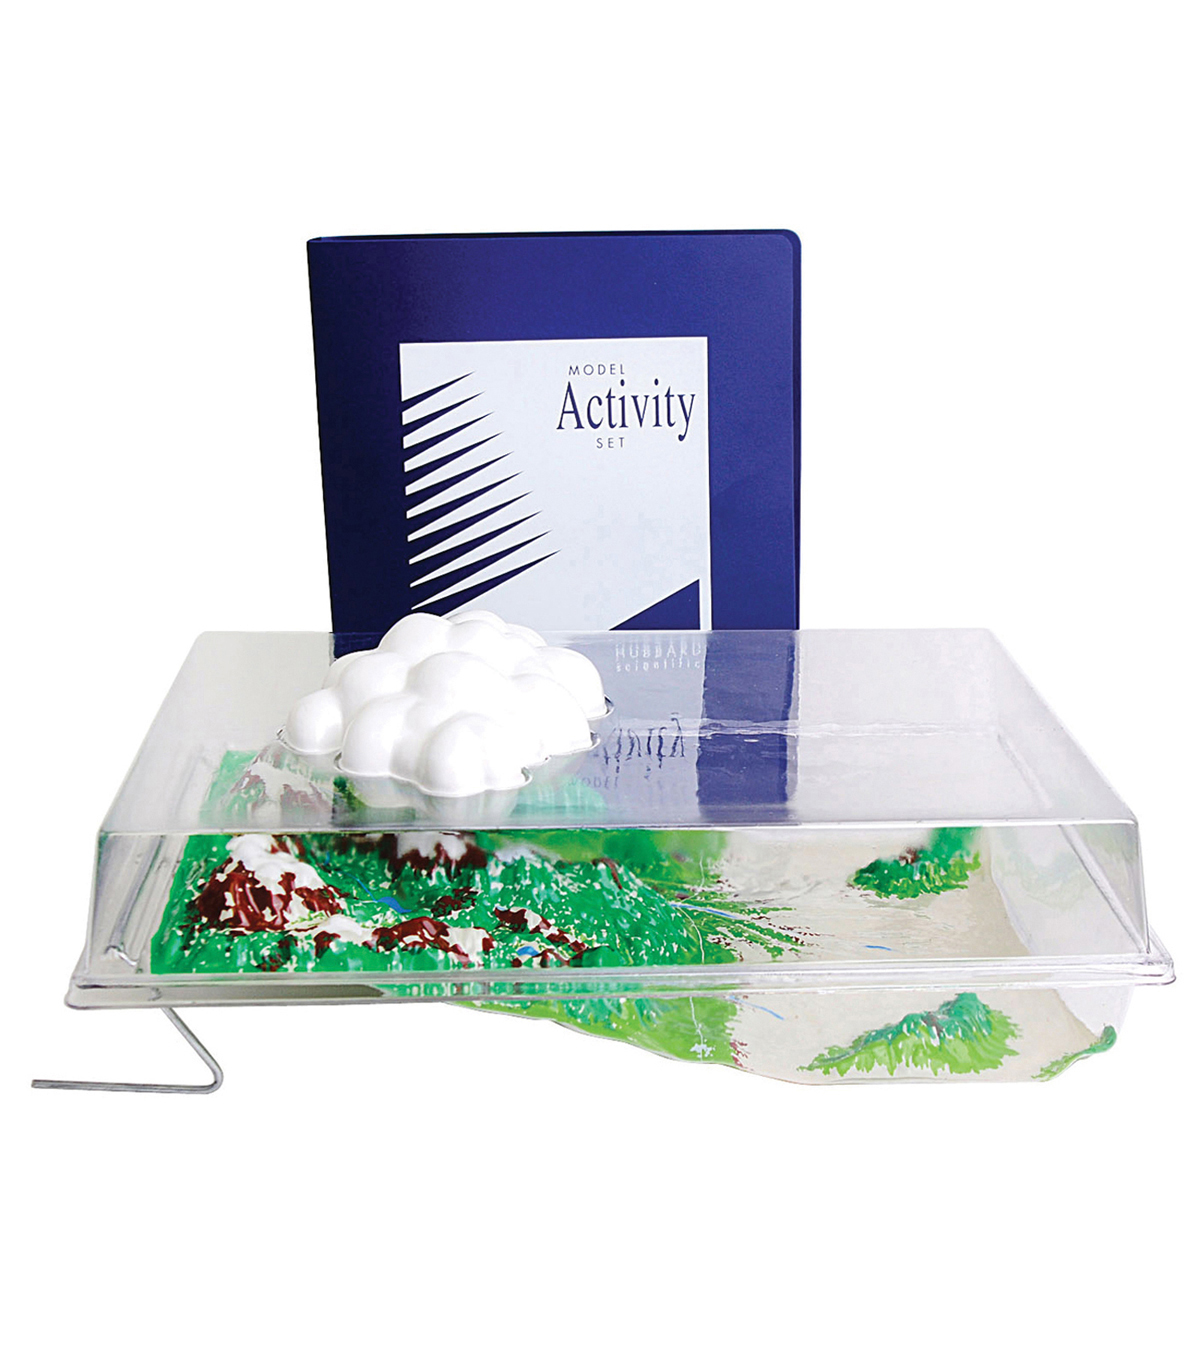 Water Cycle Model Activity Set, 14 Pieces